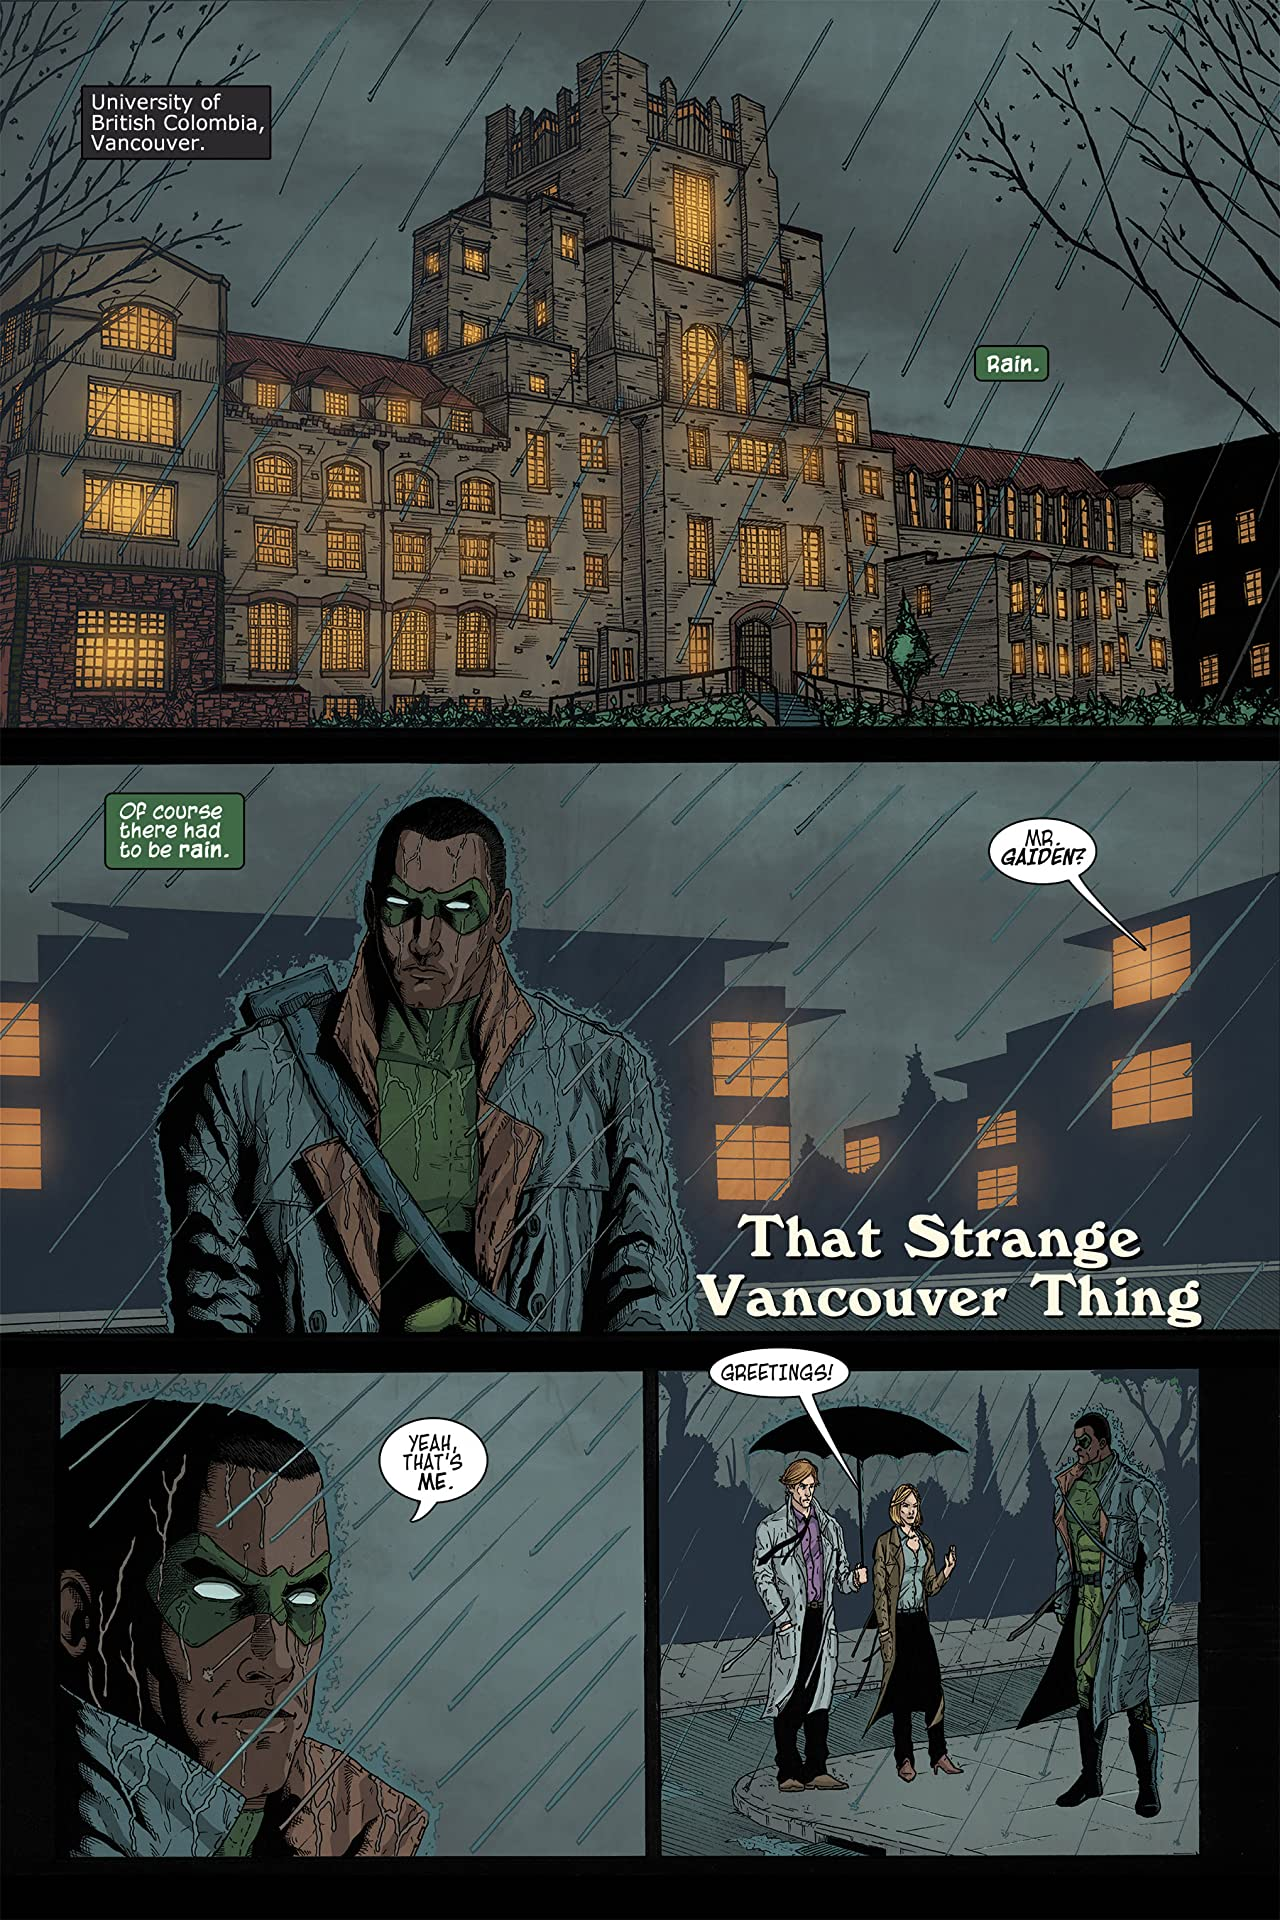 Decapolis: The Story Continues! That Strange Vancouver Thing